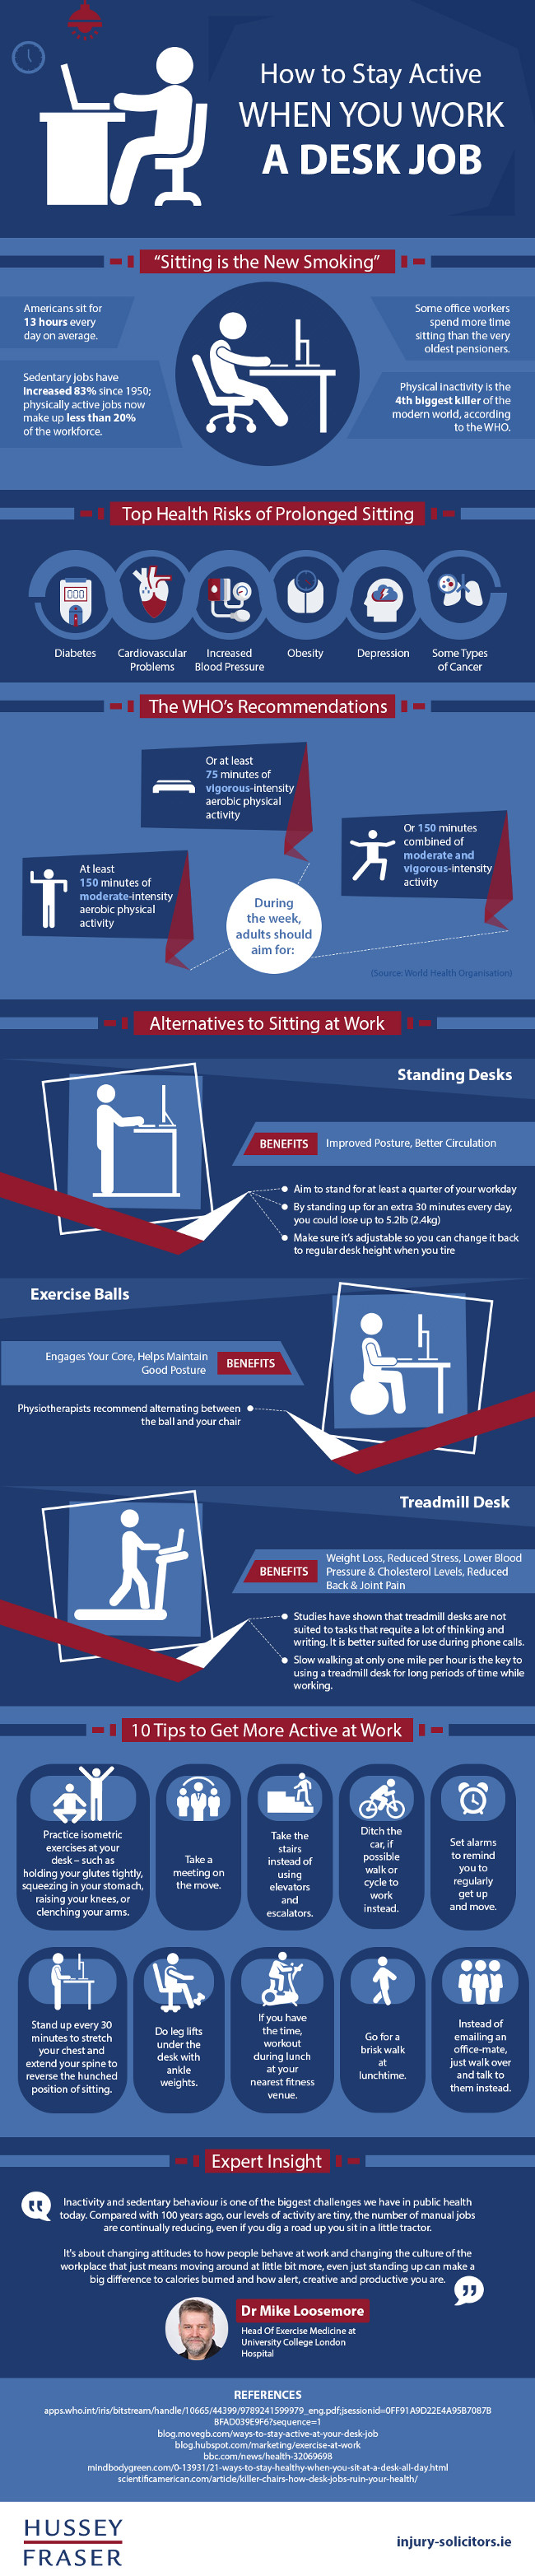 How to Stay Active When You Work A Desk Job [Infographic]